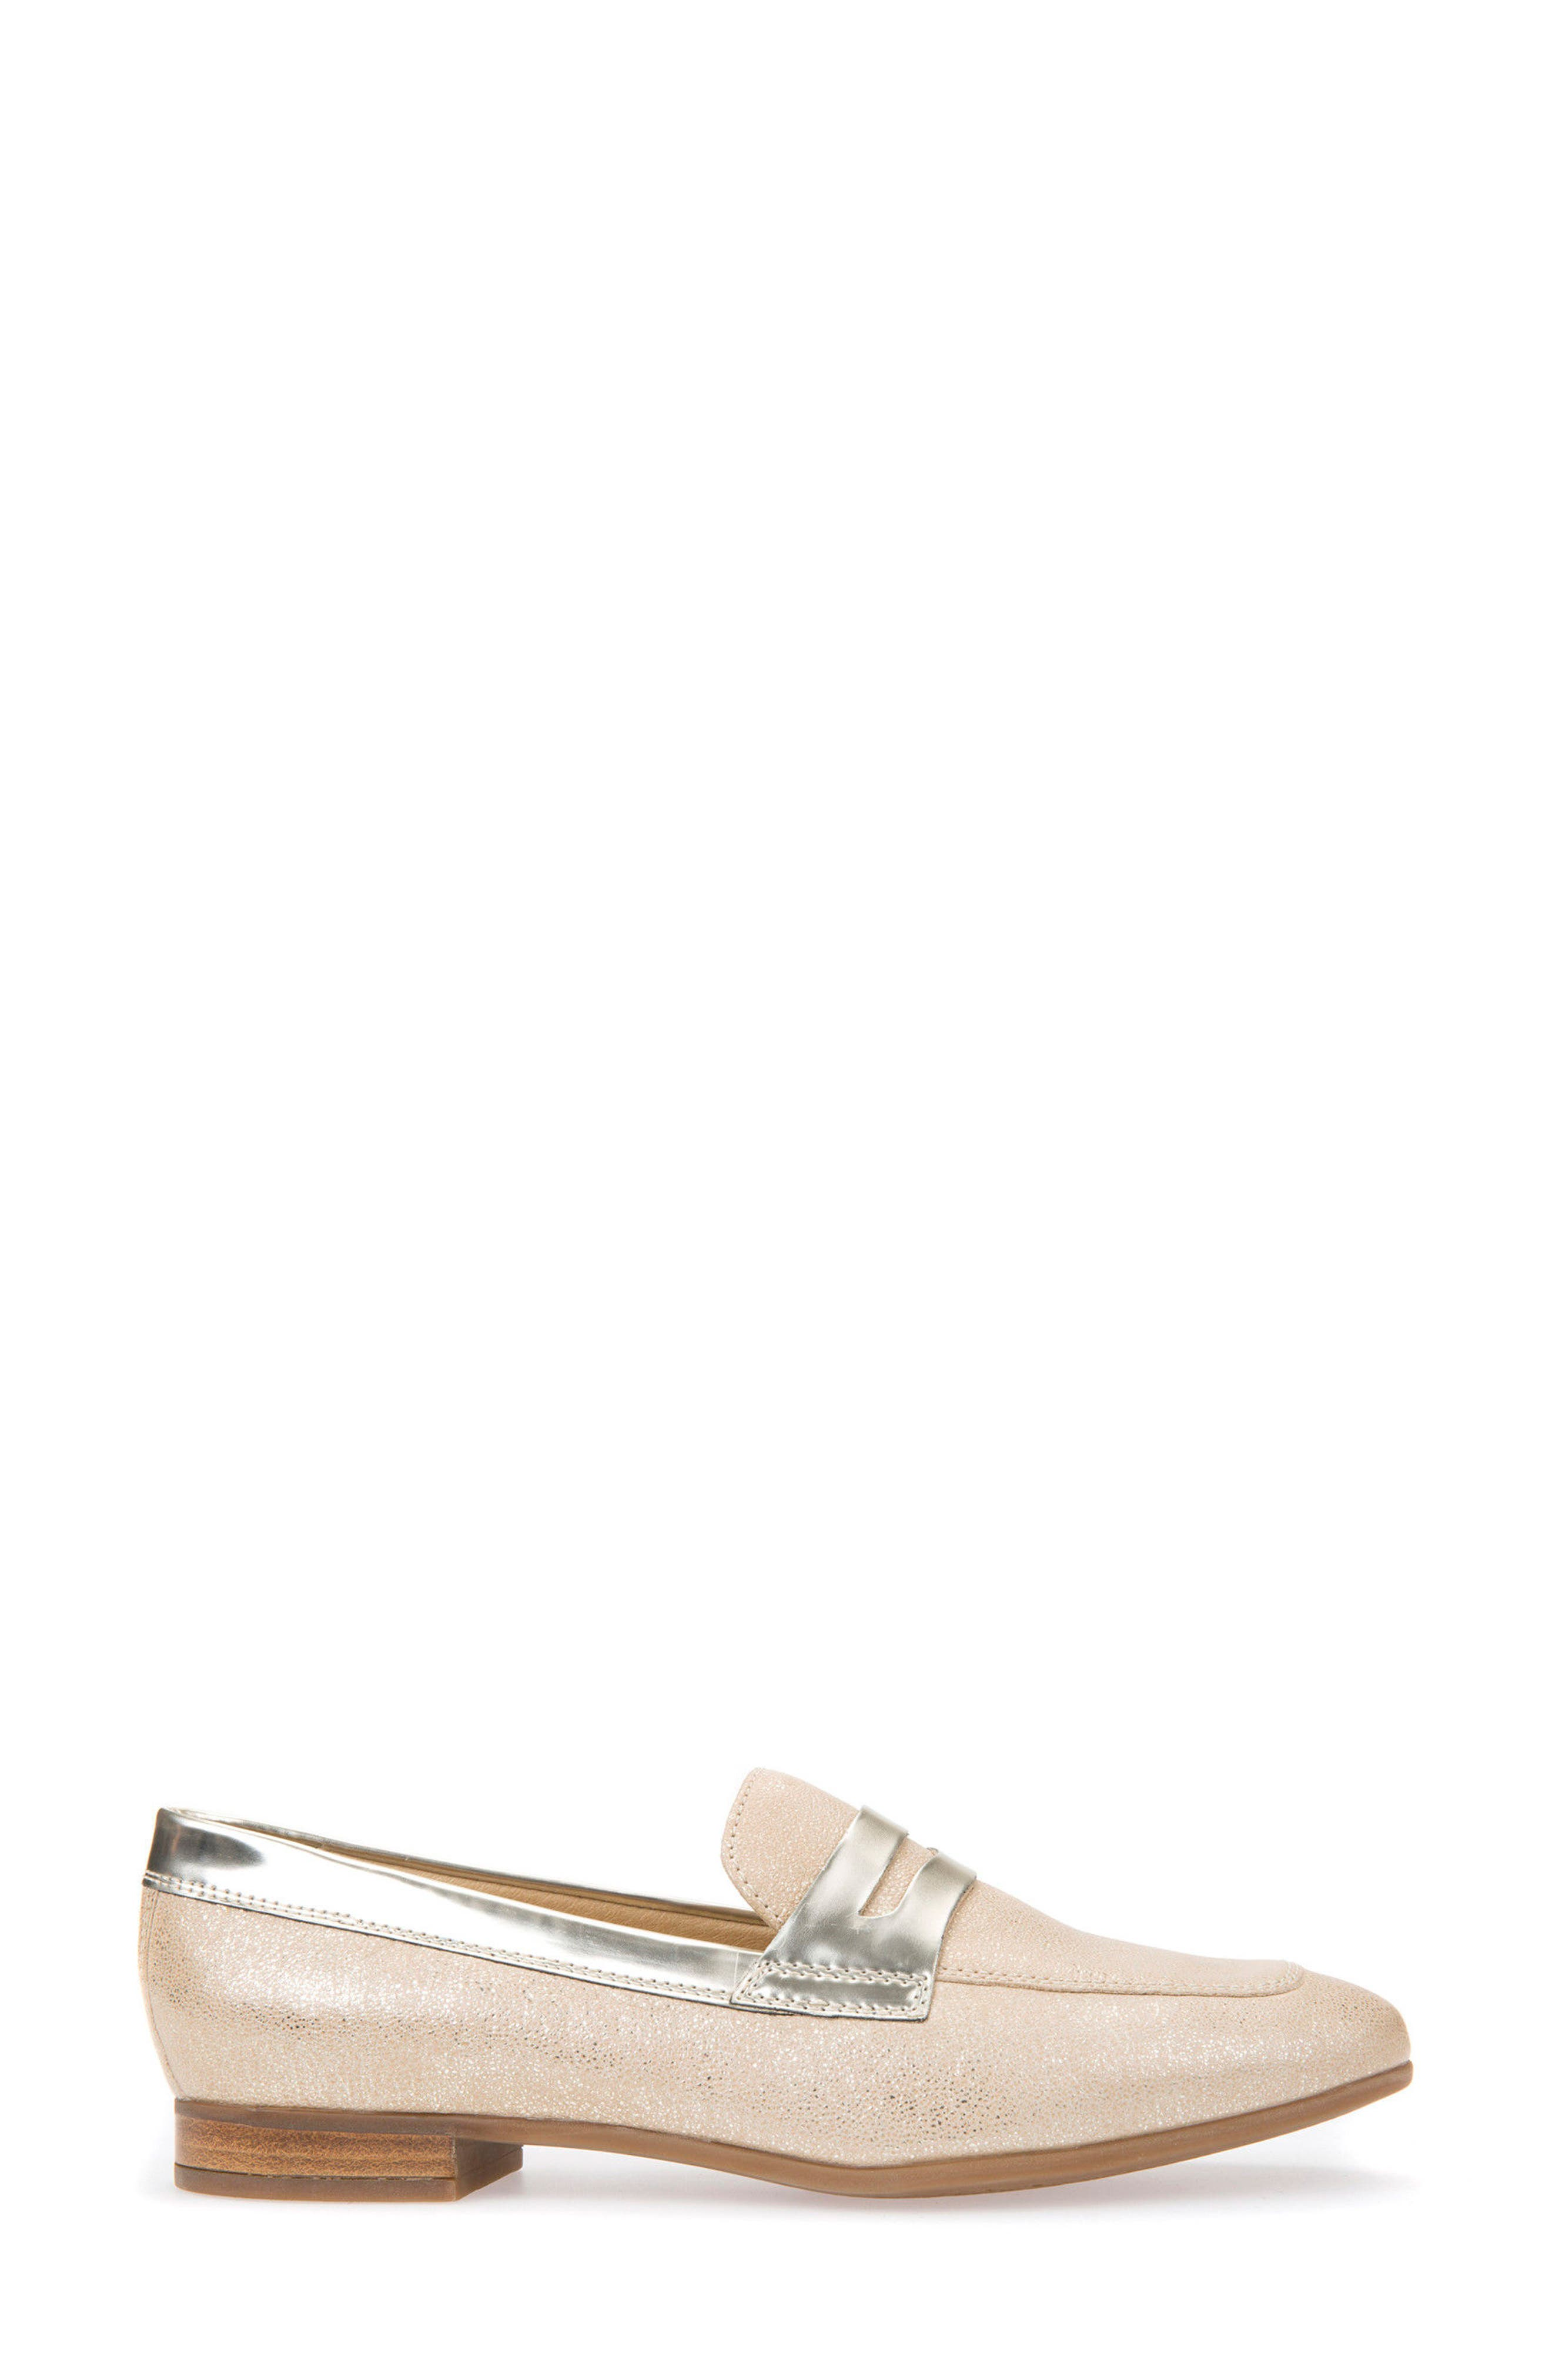 Alternate Image 3  - Geox Marlyna Penny Loafer (Women)